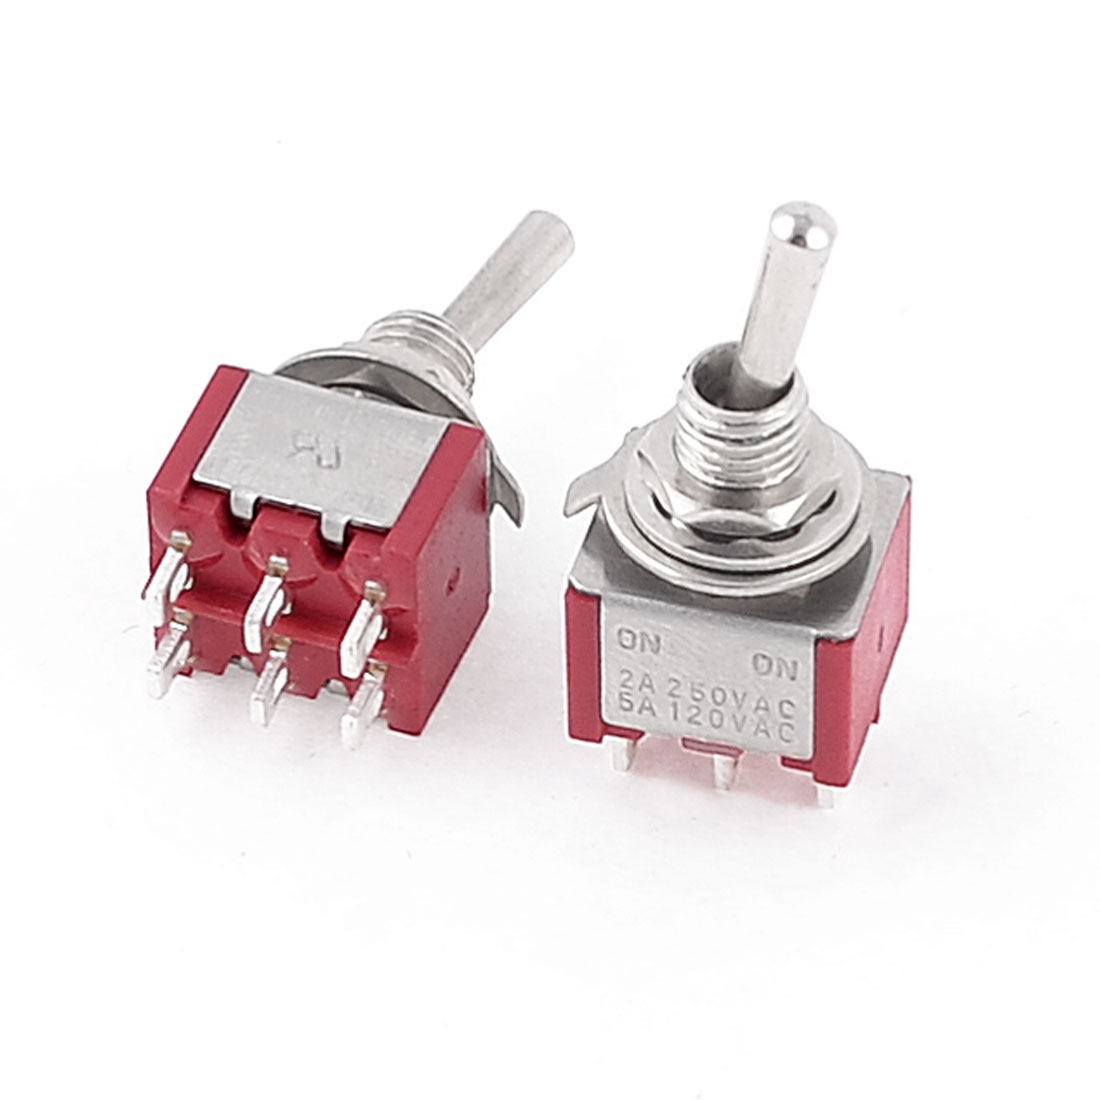 2-Pcs-AC-250V-2A-120V-5A-ON-ON-2-Position-DPDT-6-Terminals-Toggle-Switch